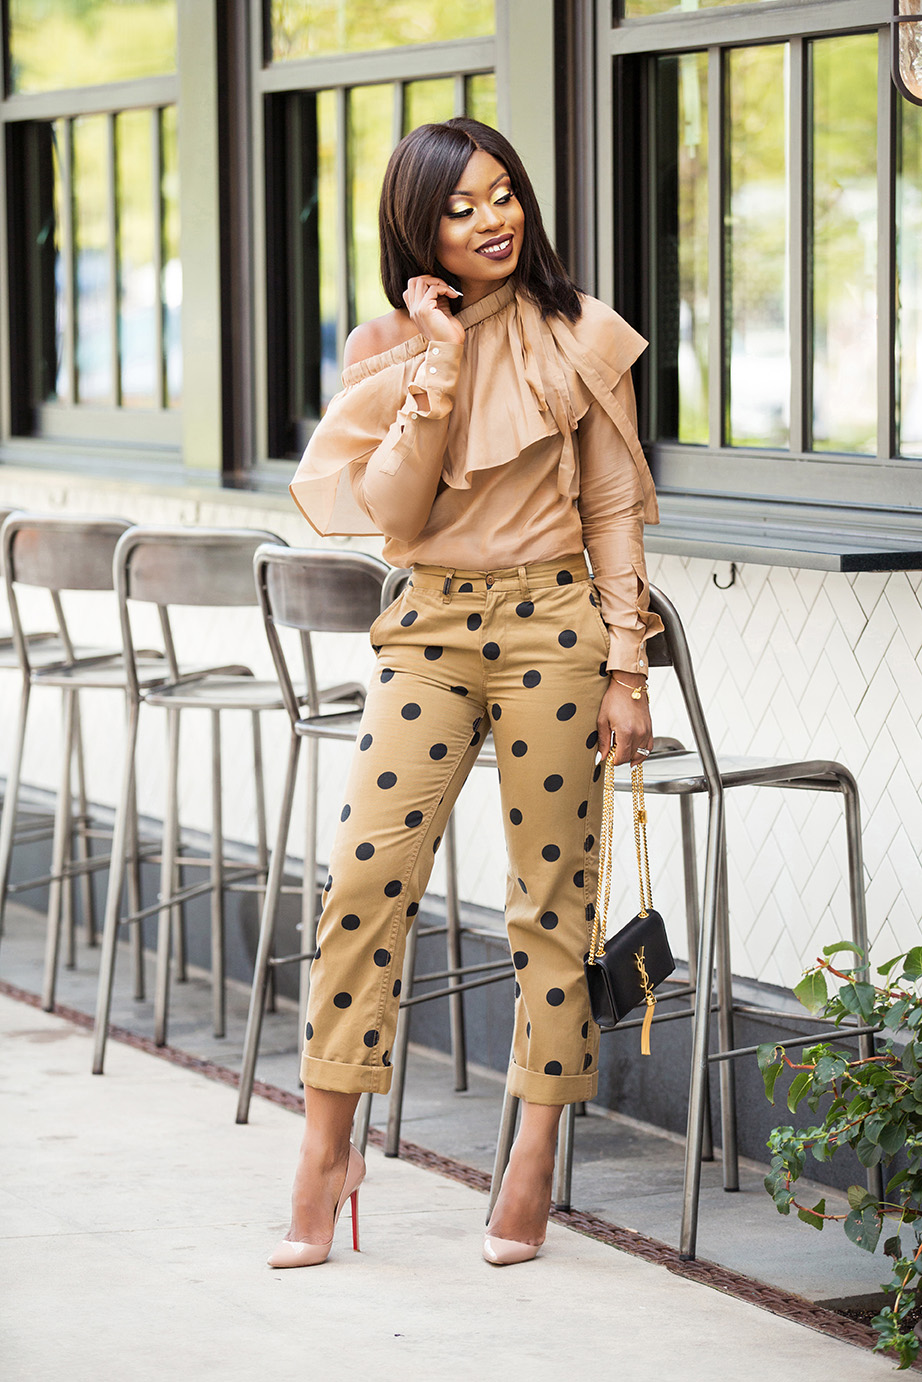 Jcrew polka dot boyfriend chino pants, www.jadore-fashion.com